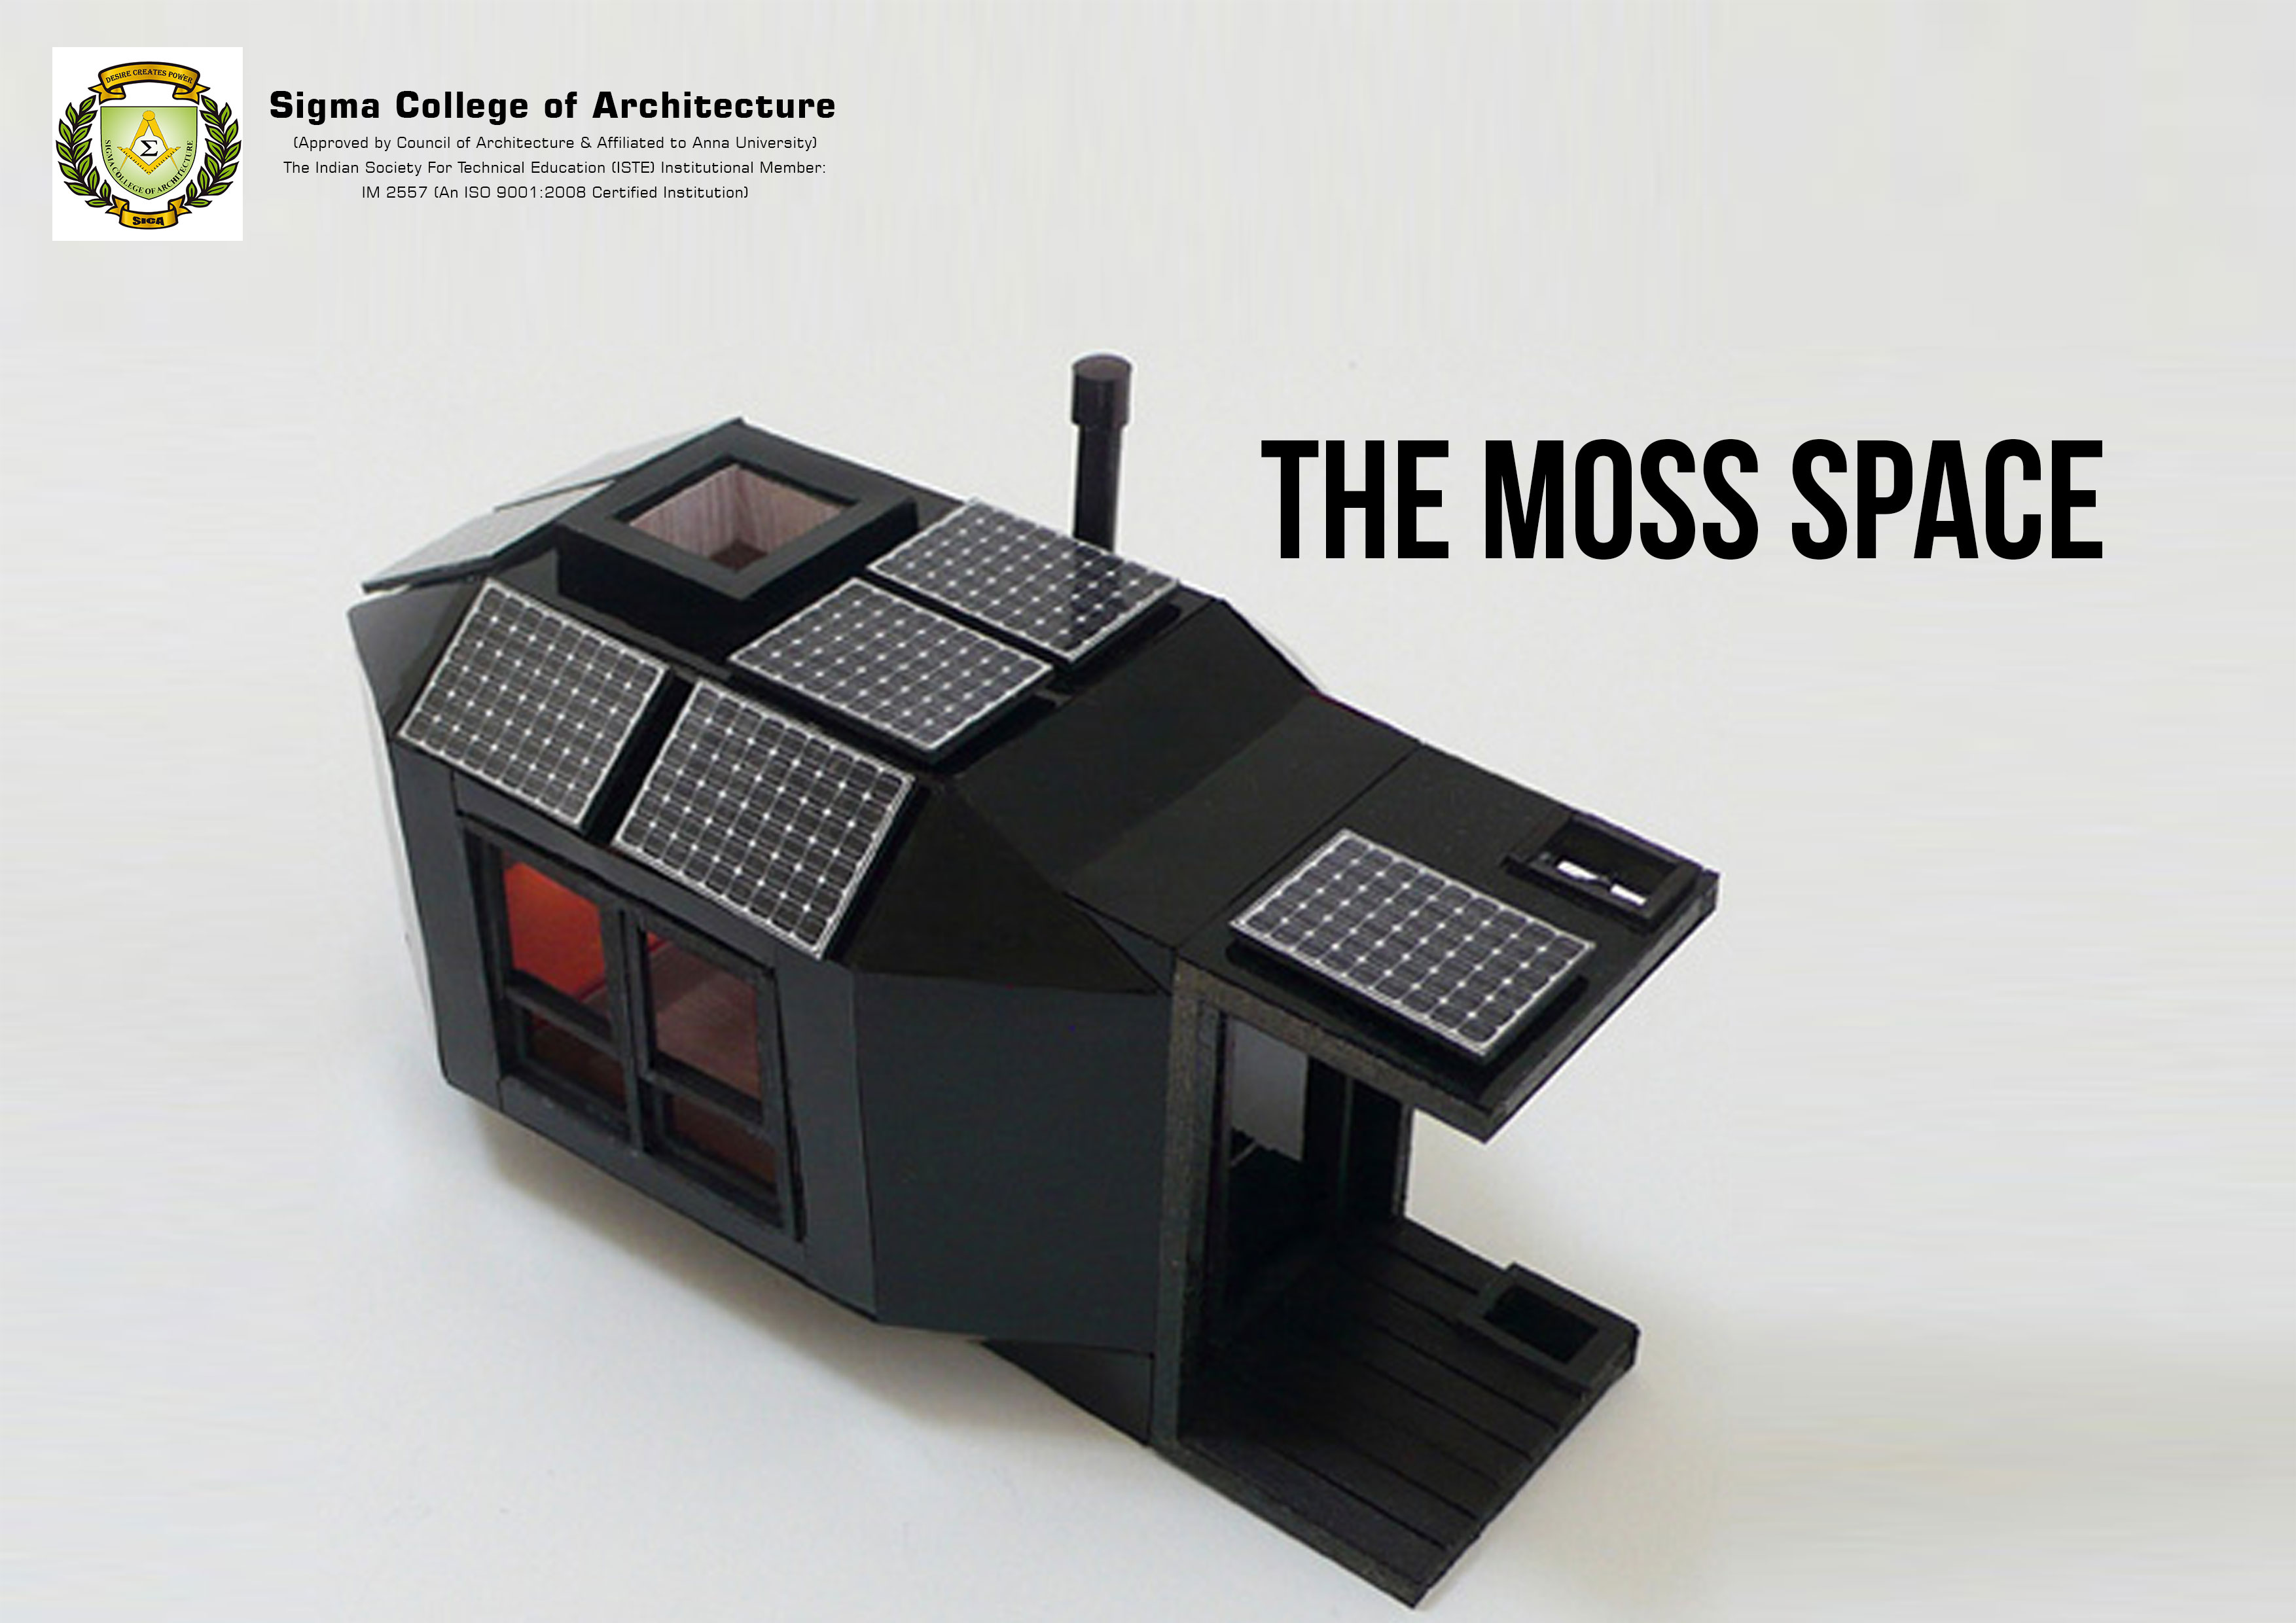 The MOSS Space